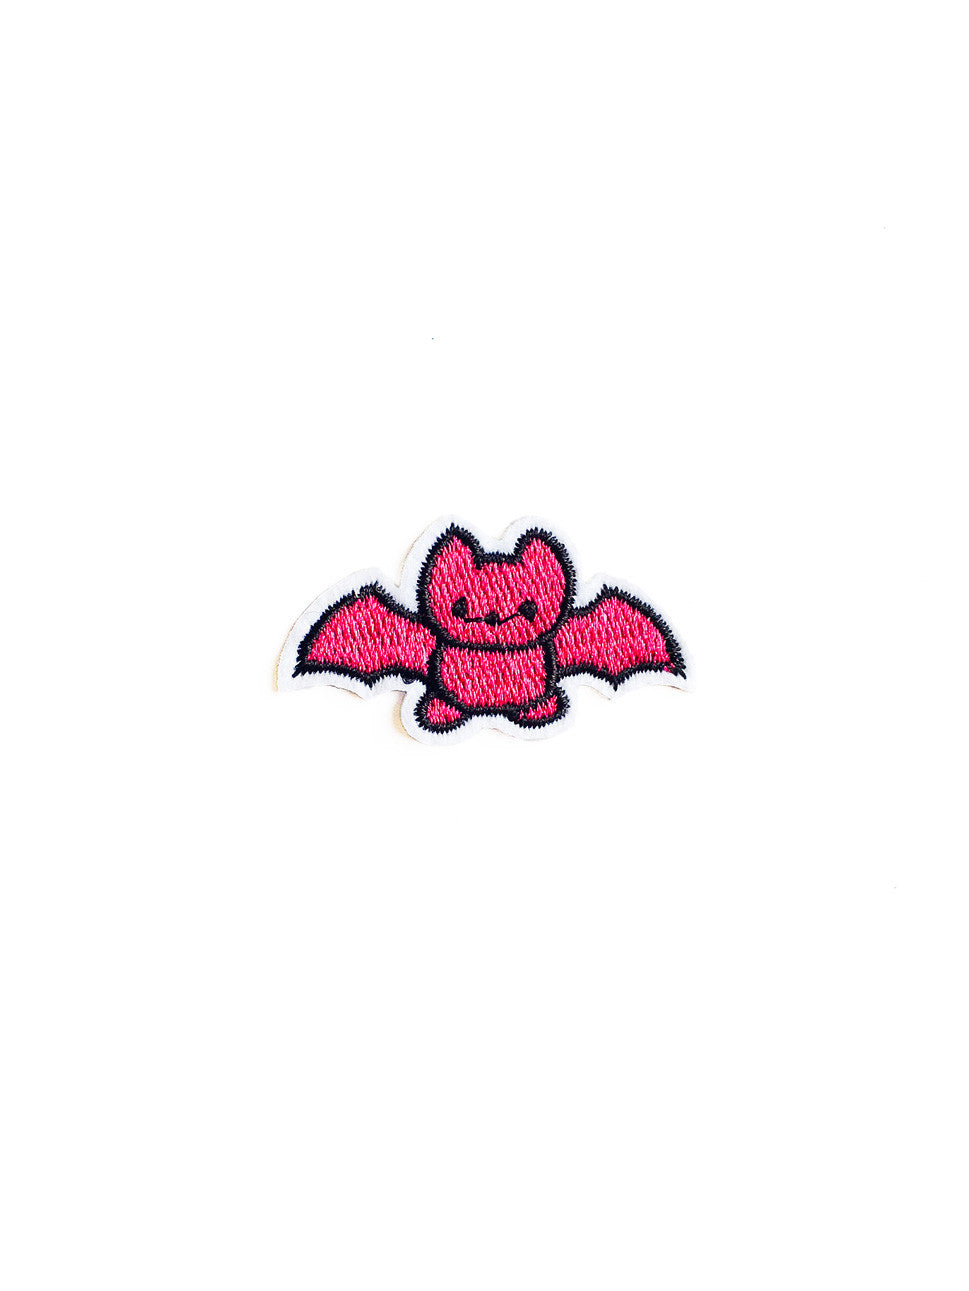 Mini Hot Pink Black Bat Iron On Patch